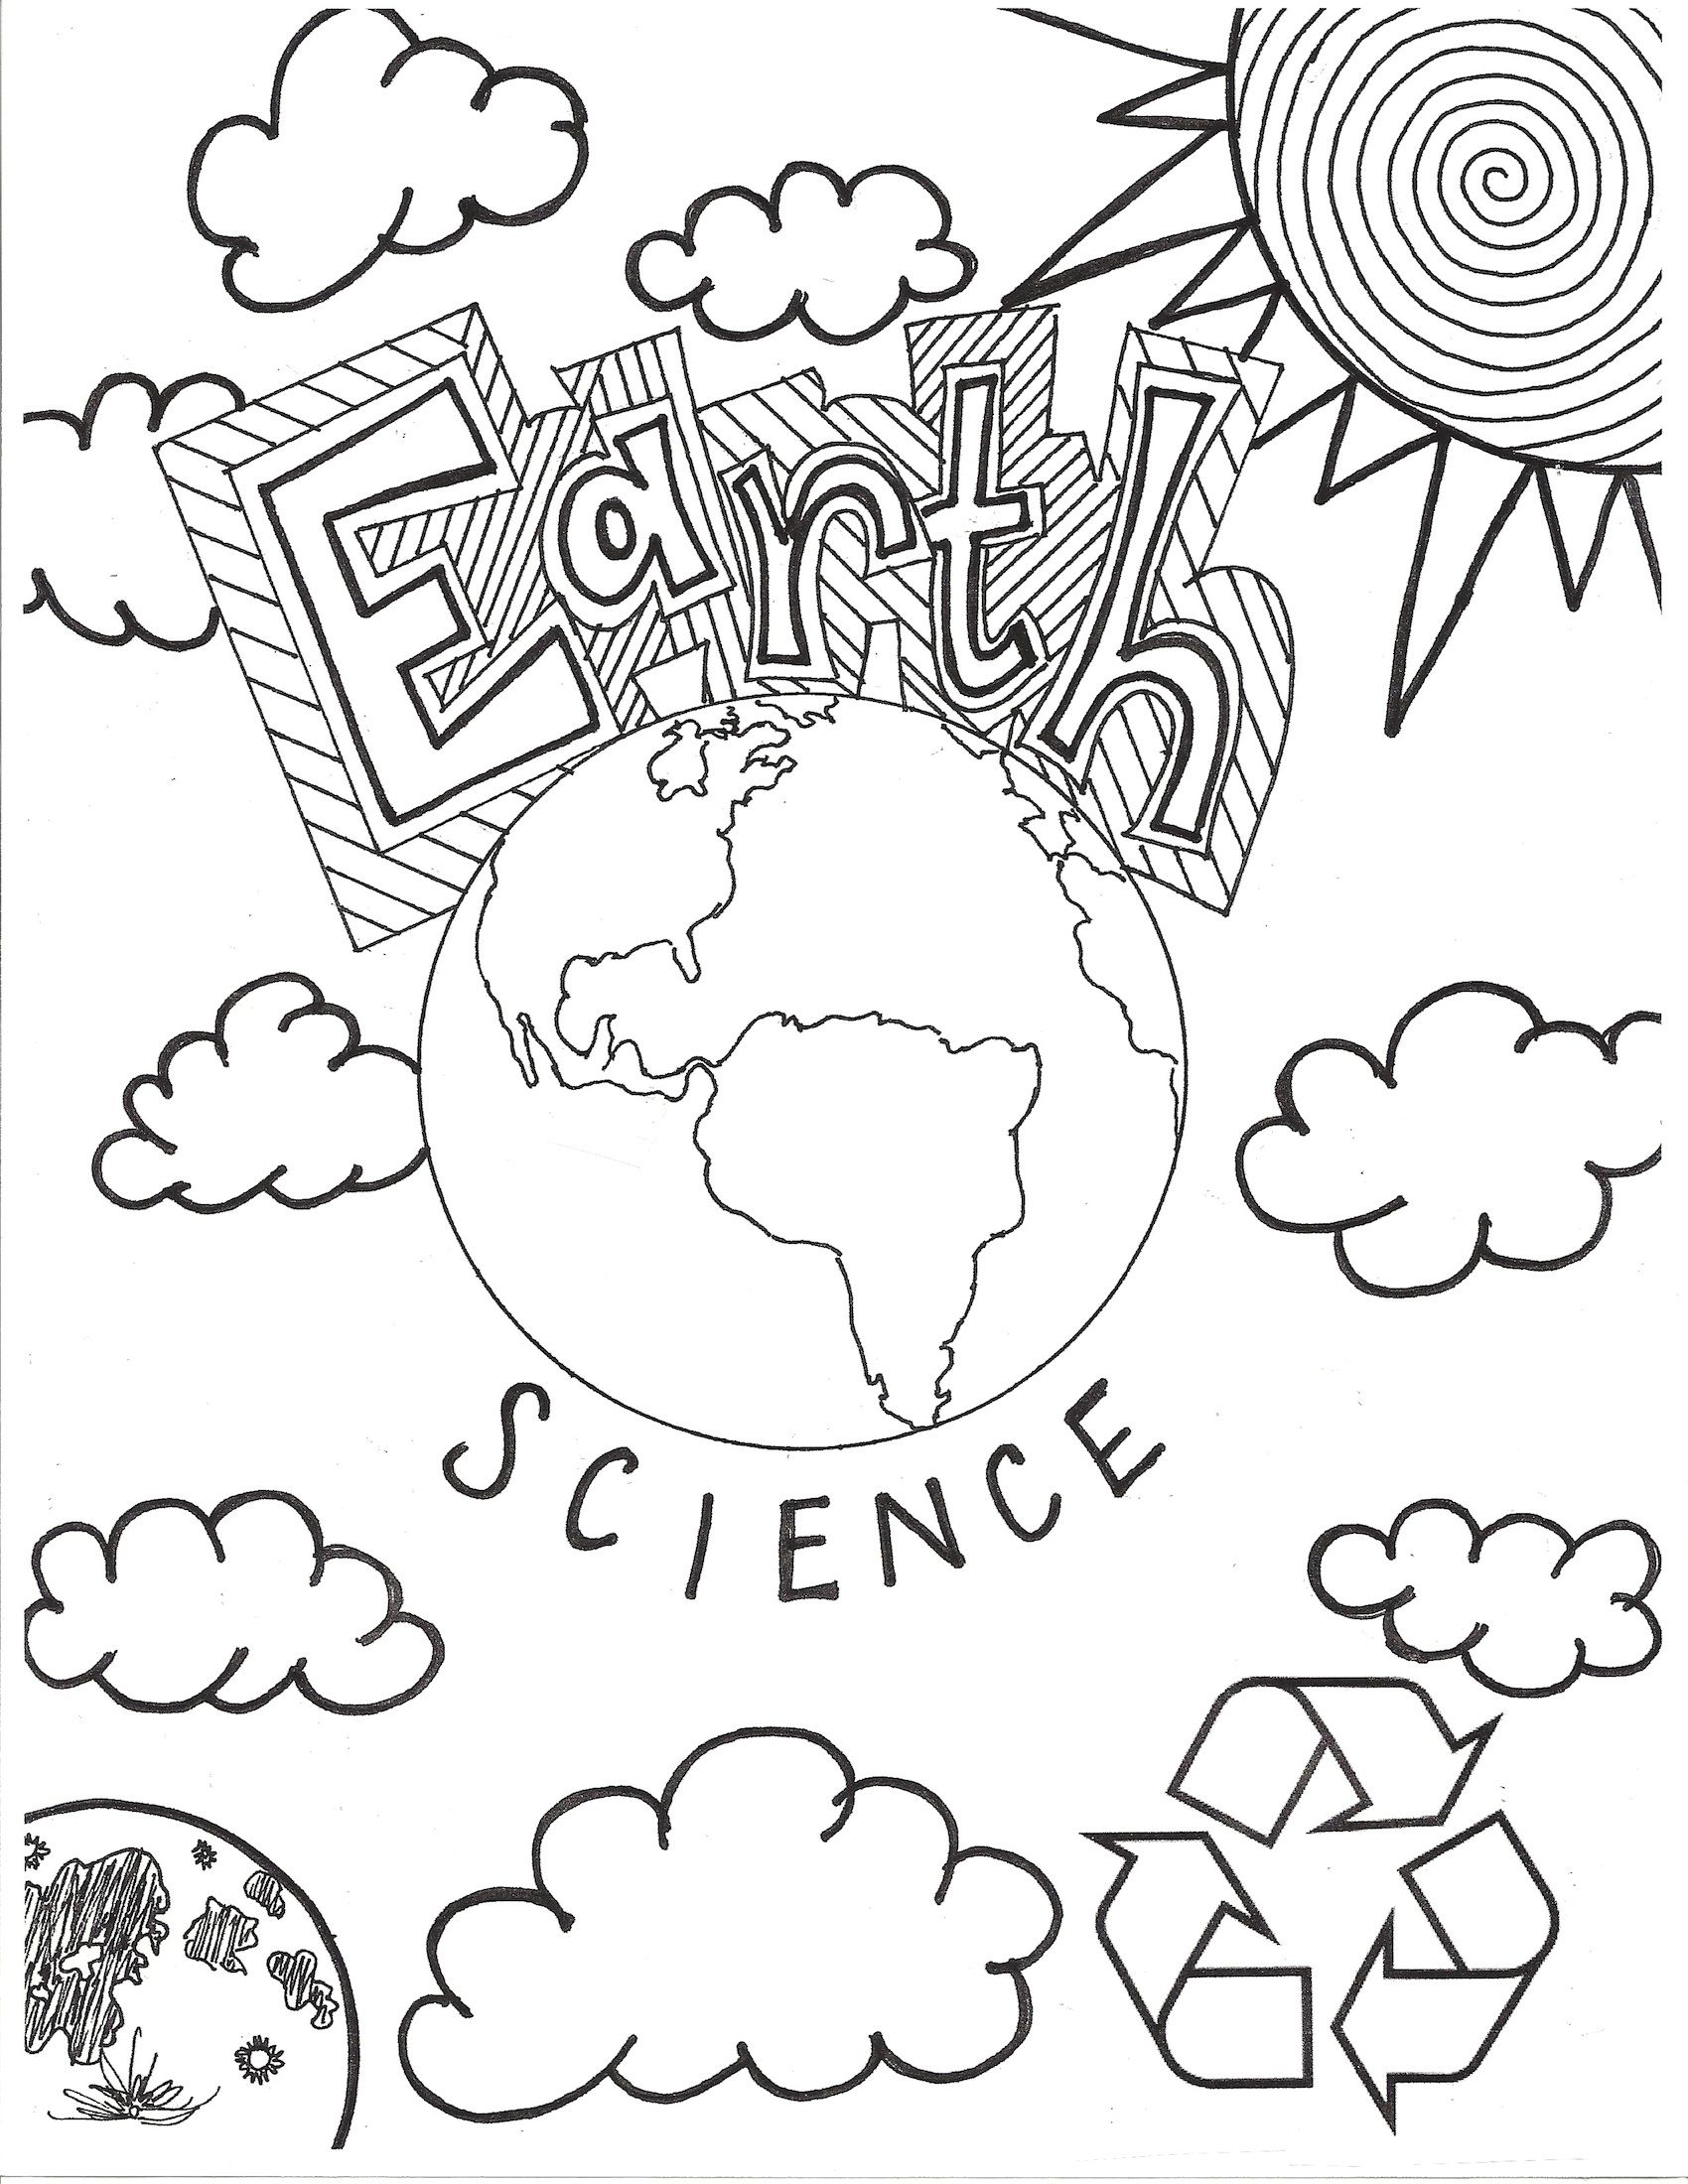 Coloring Book Cover Ideas : Earth science coloring page cover middle school